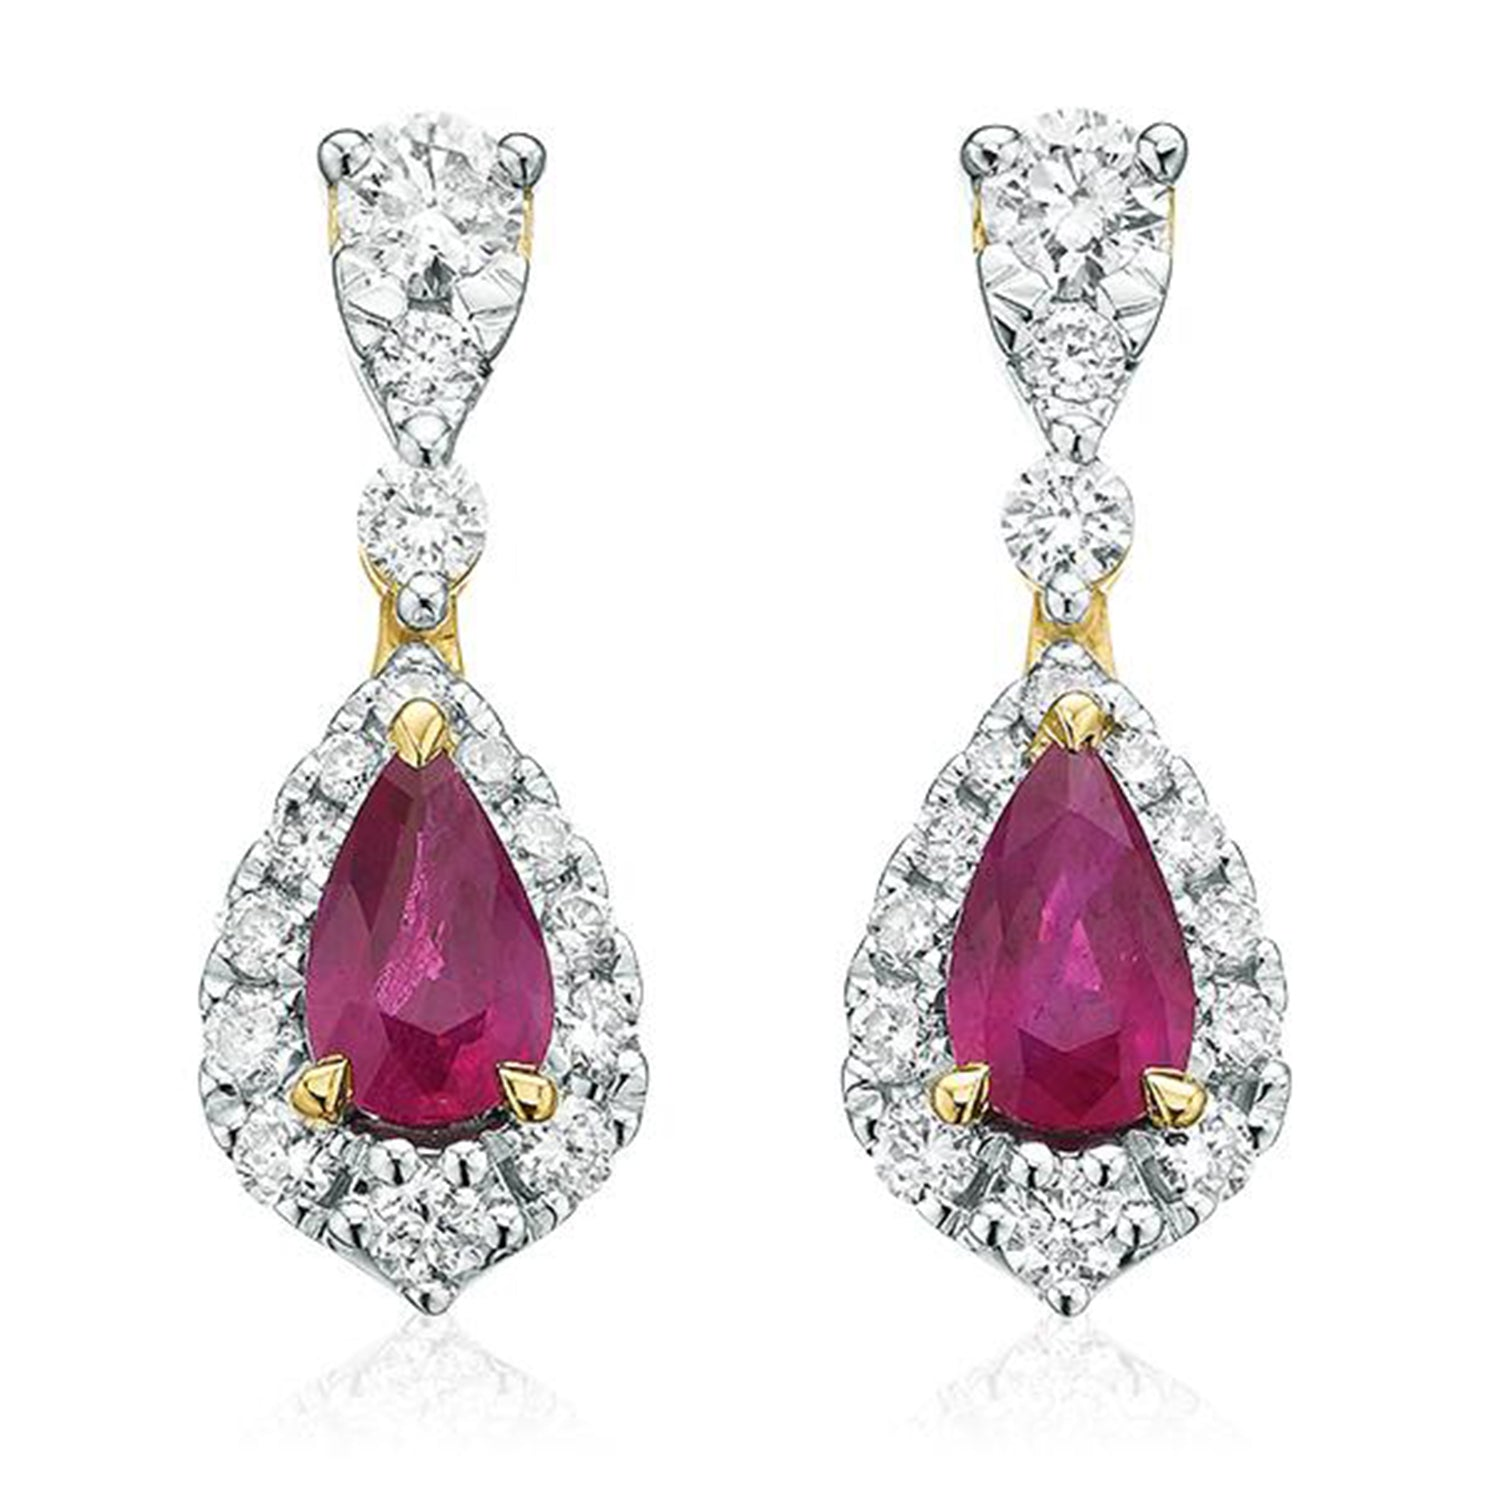 9ct Yellow Gold Pear & Round Brilliant Cut  0.30 CARAT tw of Diamonds Natural Ruby